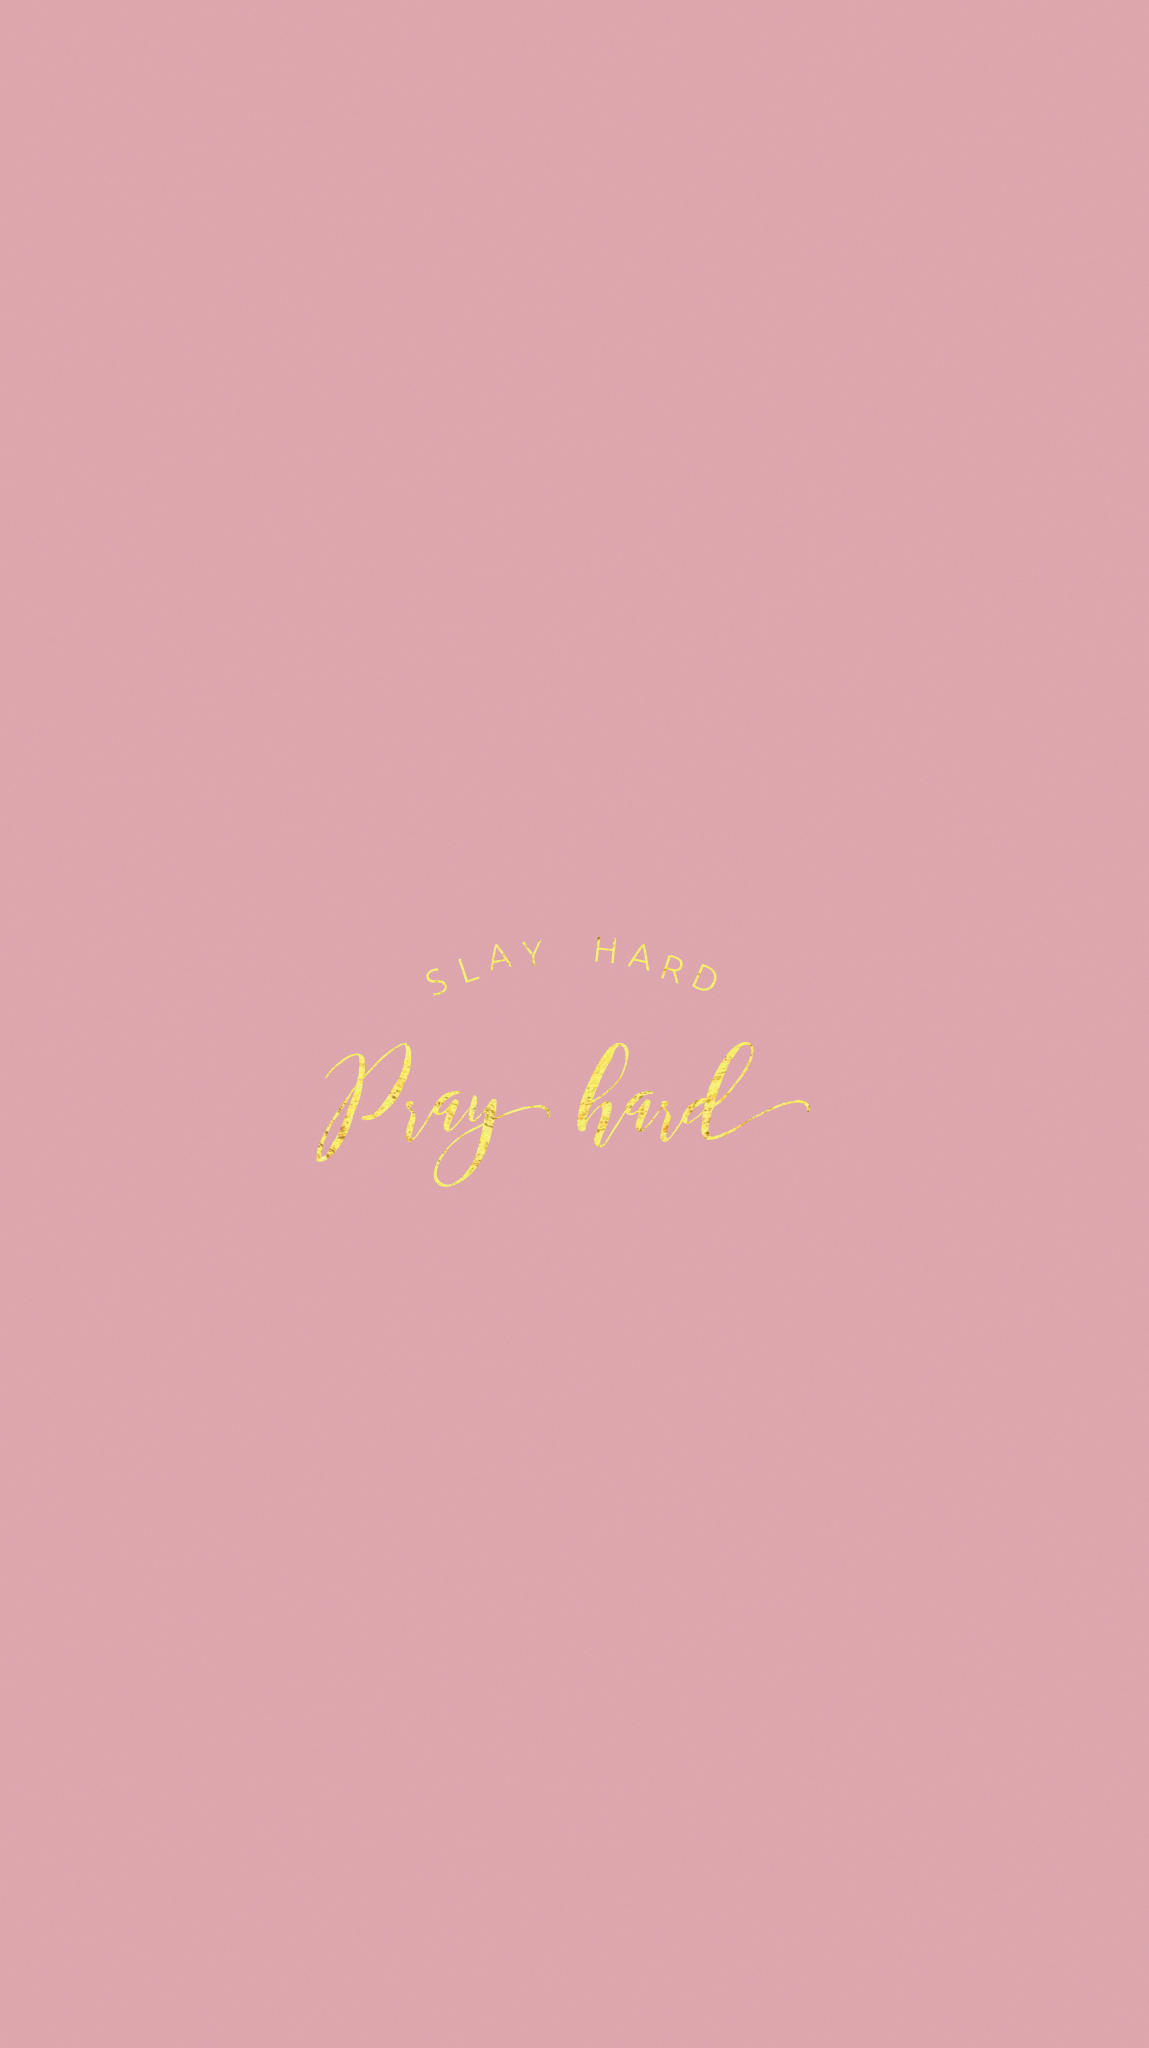 Rose Gold Pretty Positivity Iphone Wallpaper Evaland Iphonewallpaperrosegold Iphone Wallpaper Quotes Love Pink Wallpaper Iphone Wallpaper Iphone Quotes